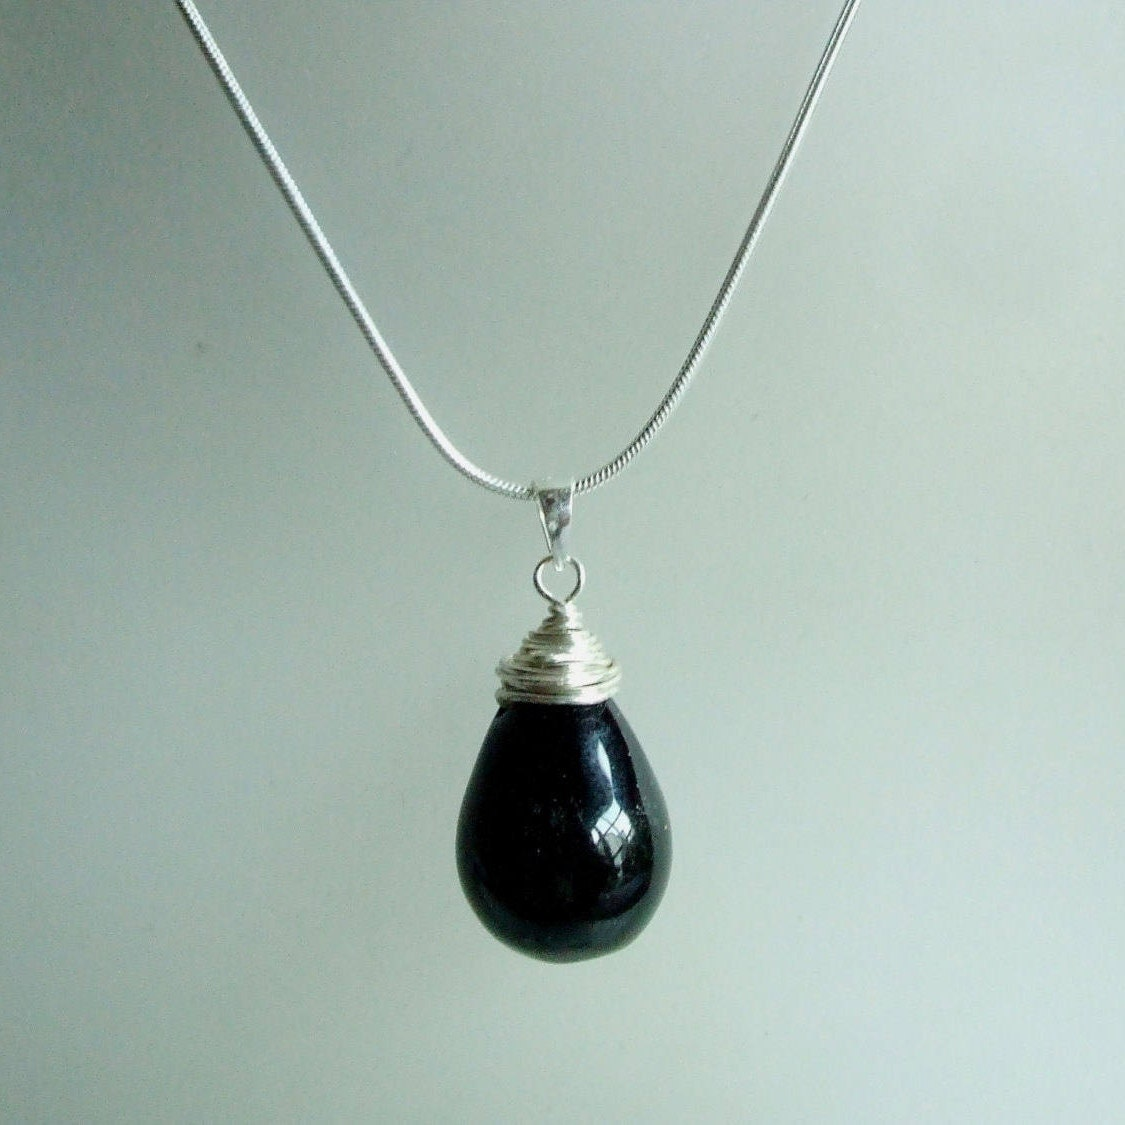 Black Onyx pendant necklace, Sterling Silver wire wrapped Black Onyx ...